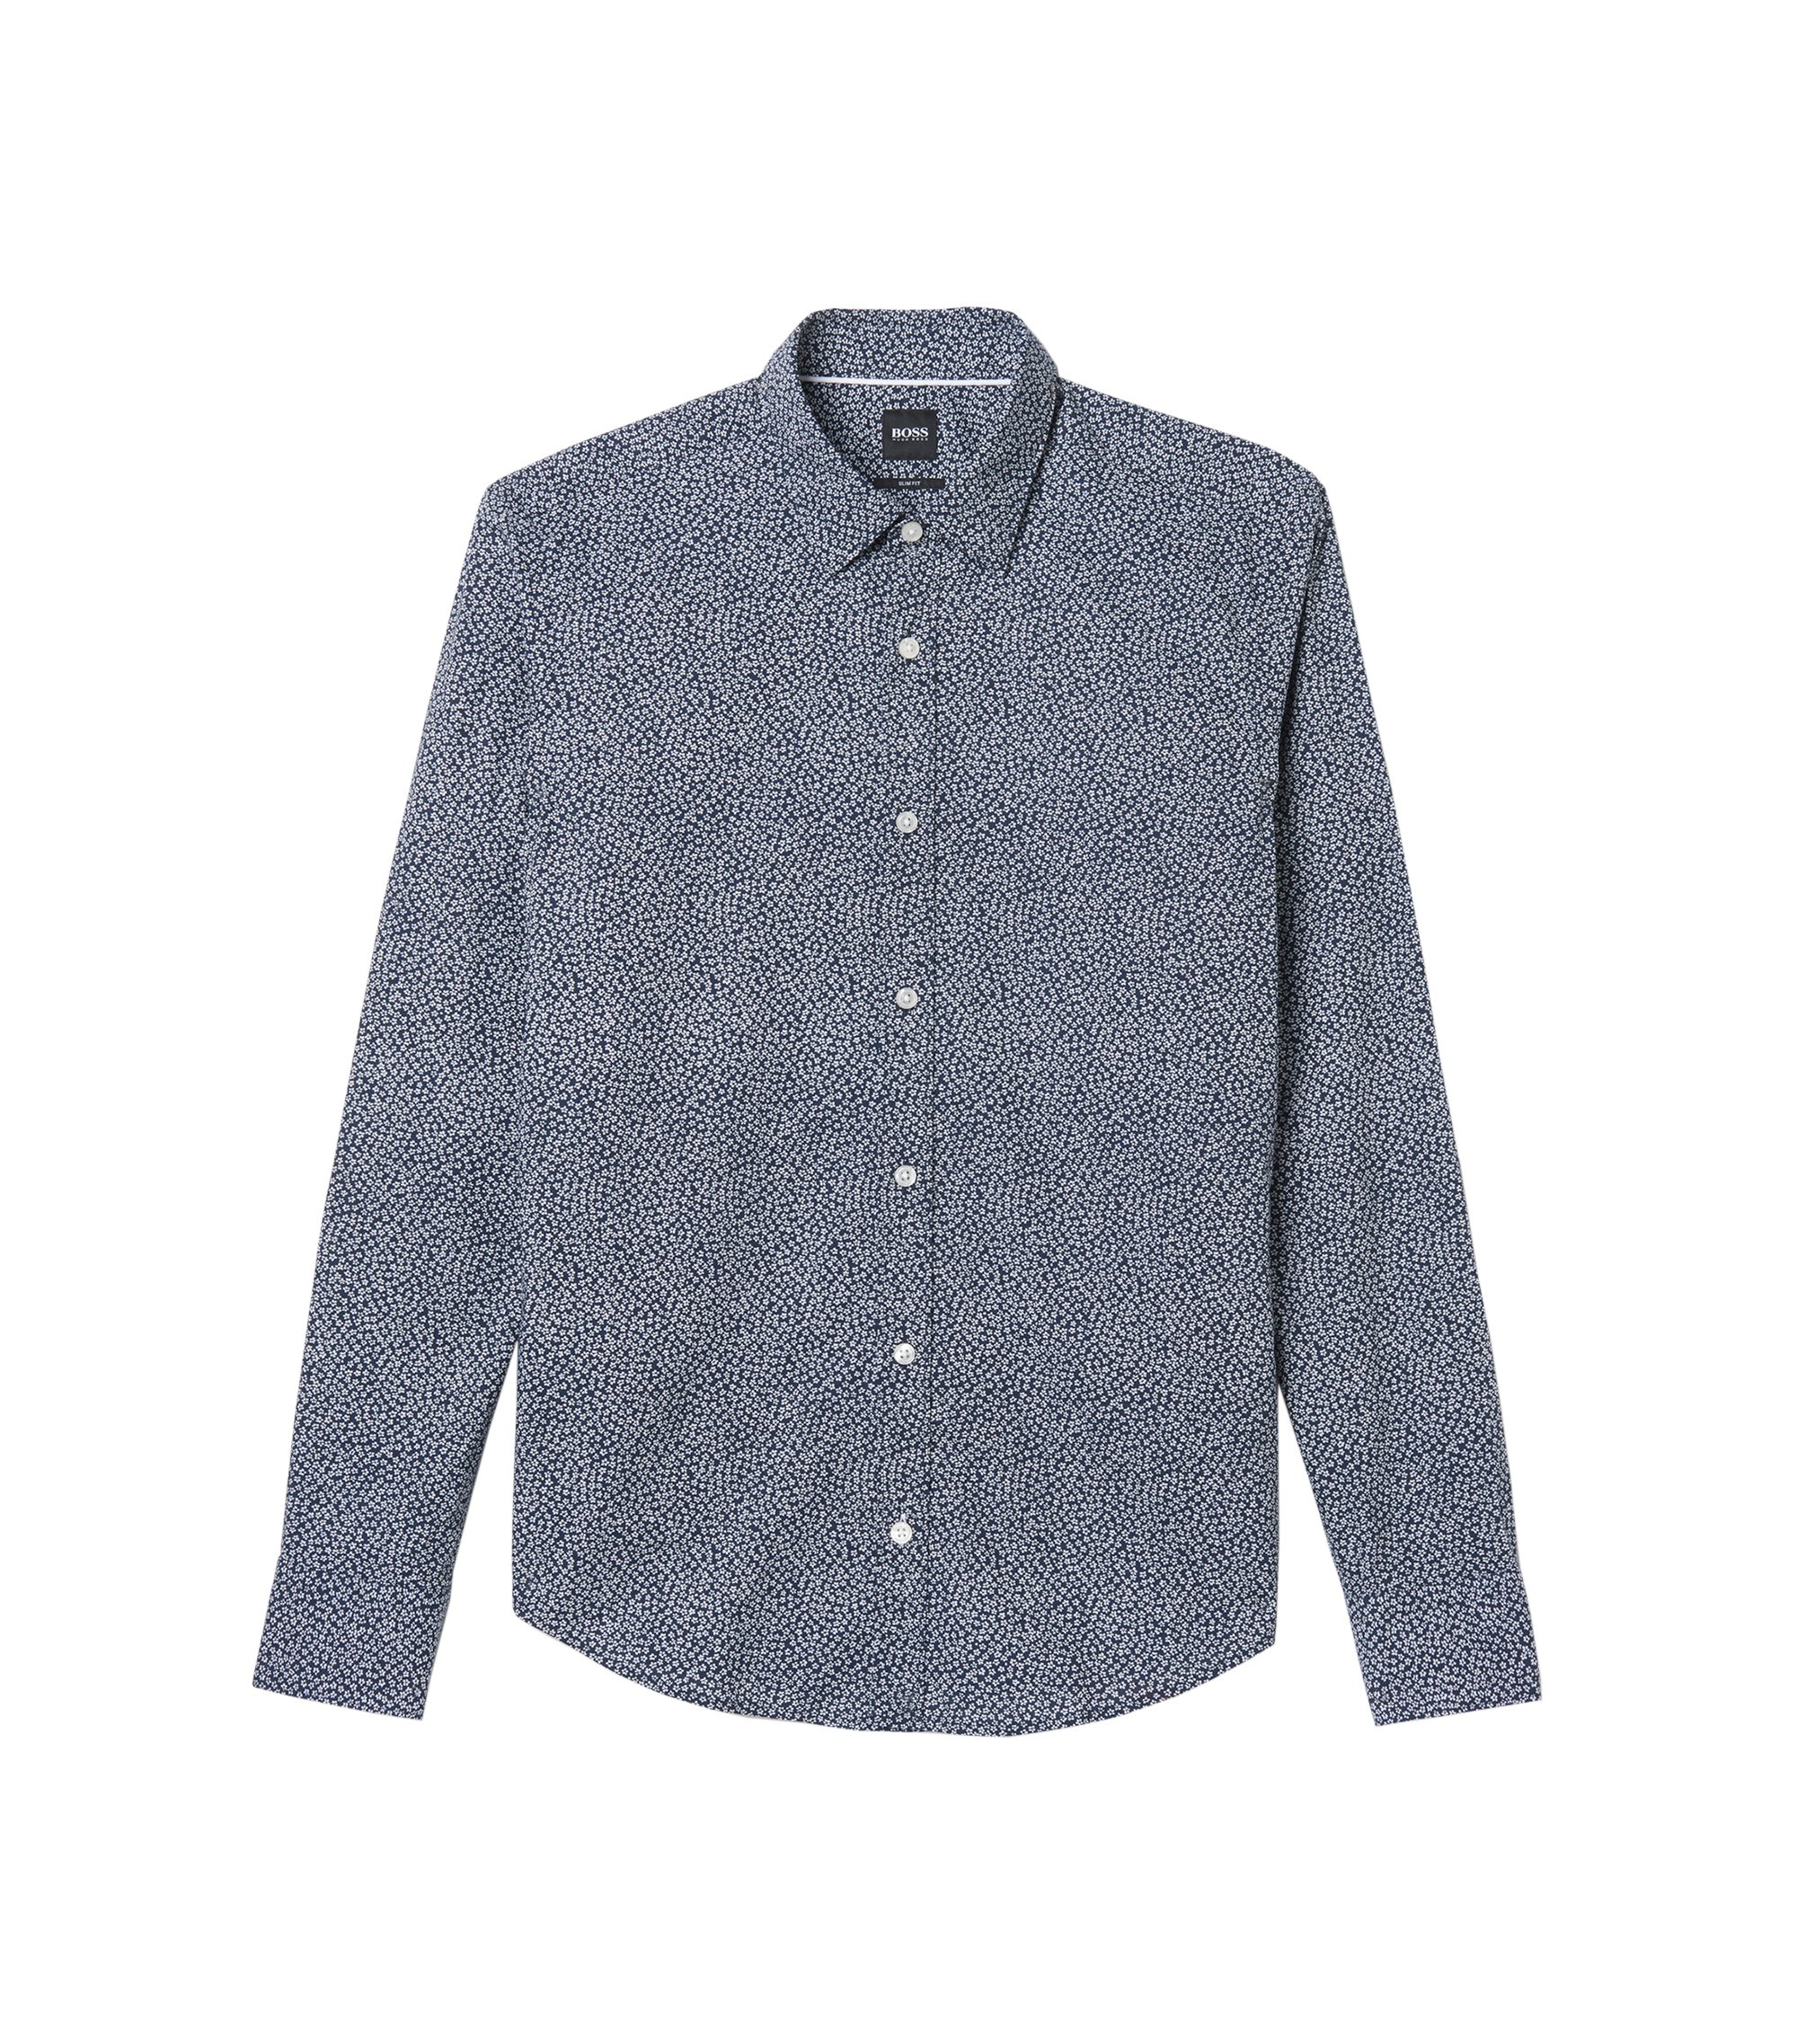 Cotton Flower Print Sport Shirt, Slim Fit | Reid, Dark Blue